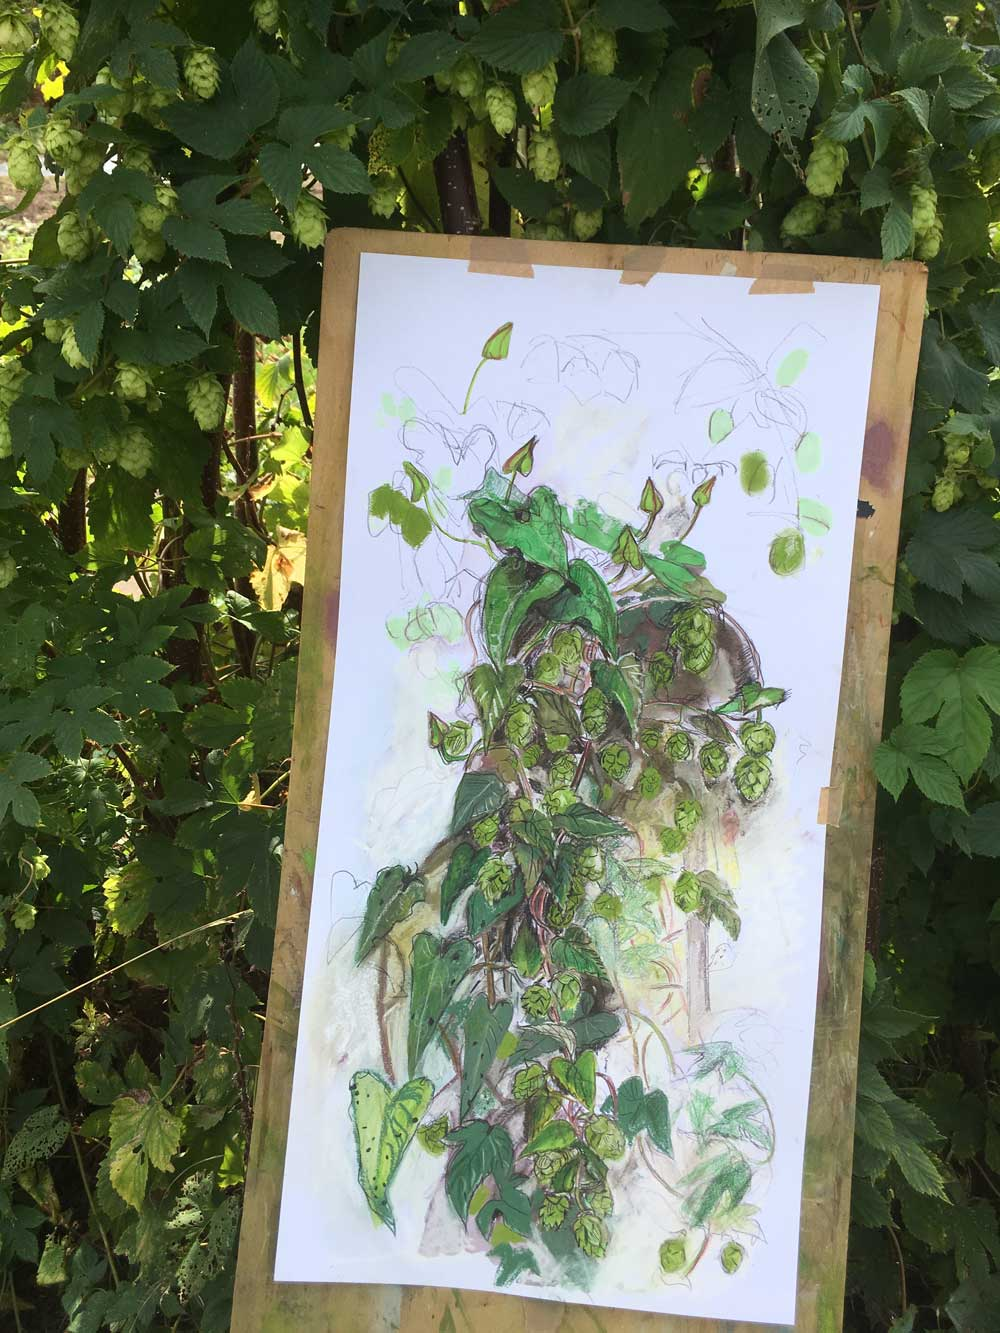 Ripening Papery Hops From Dawn and Martin's Plot